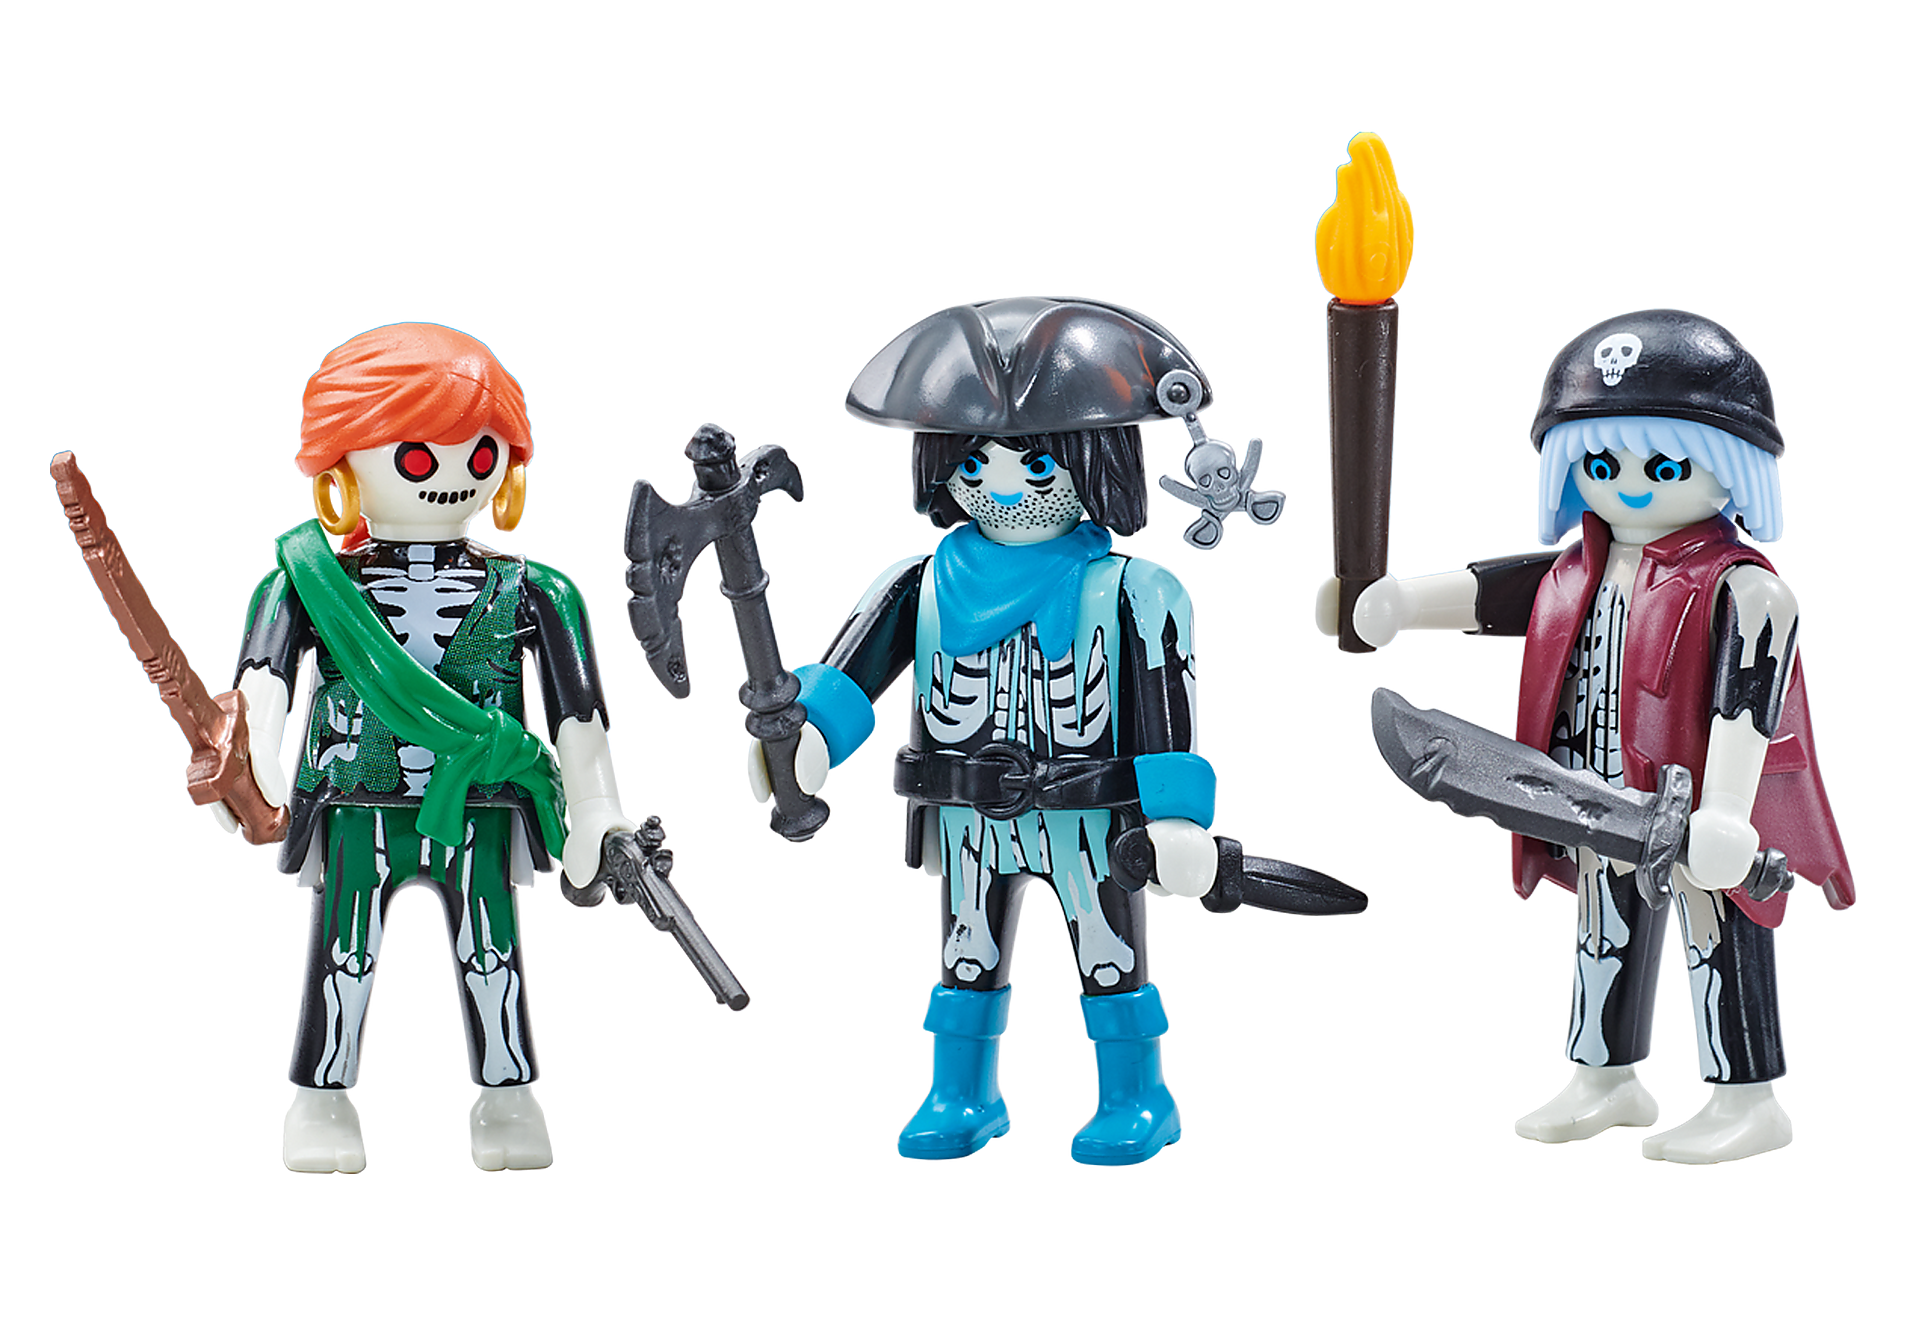 http://media.playmobil.com/i/playmobil/6592_product_detail/Τρεις πειρατές φαντάσματα